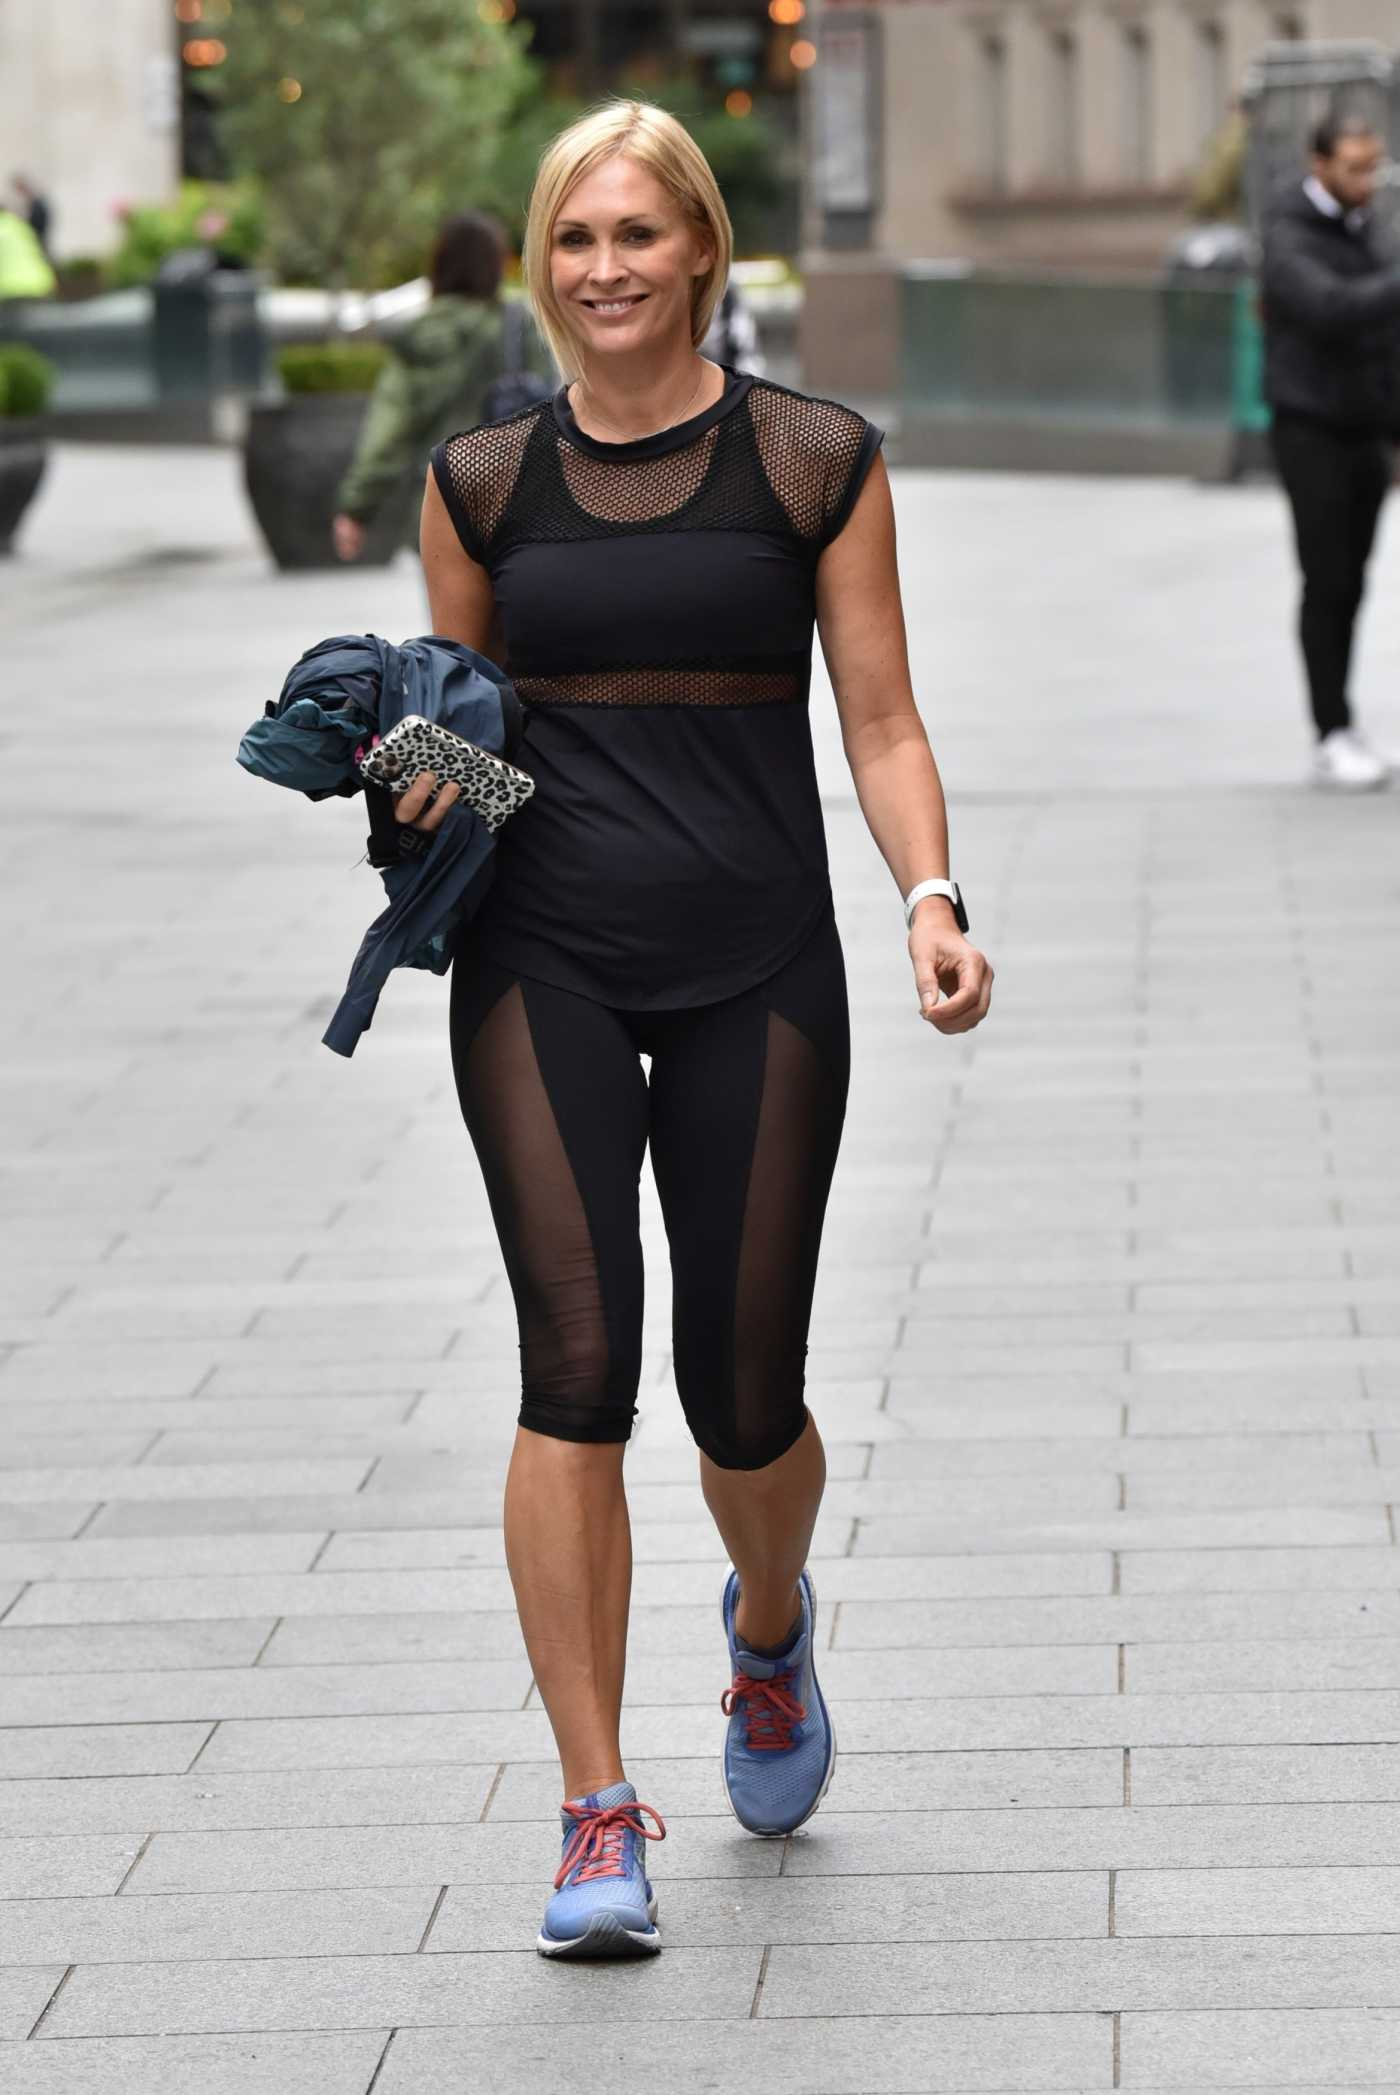 Jenni Falconer in a Black Leggings Exits the Smooth Radio in London 07/09/2020